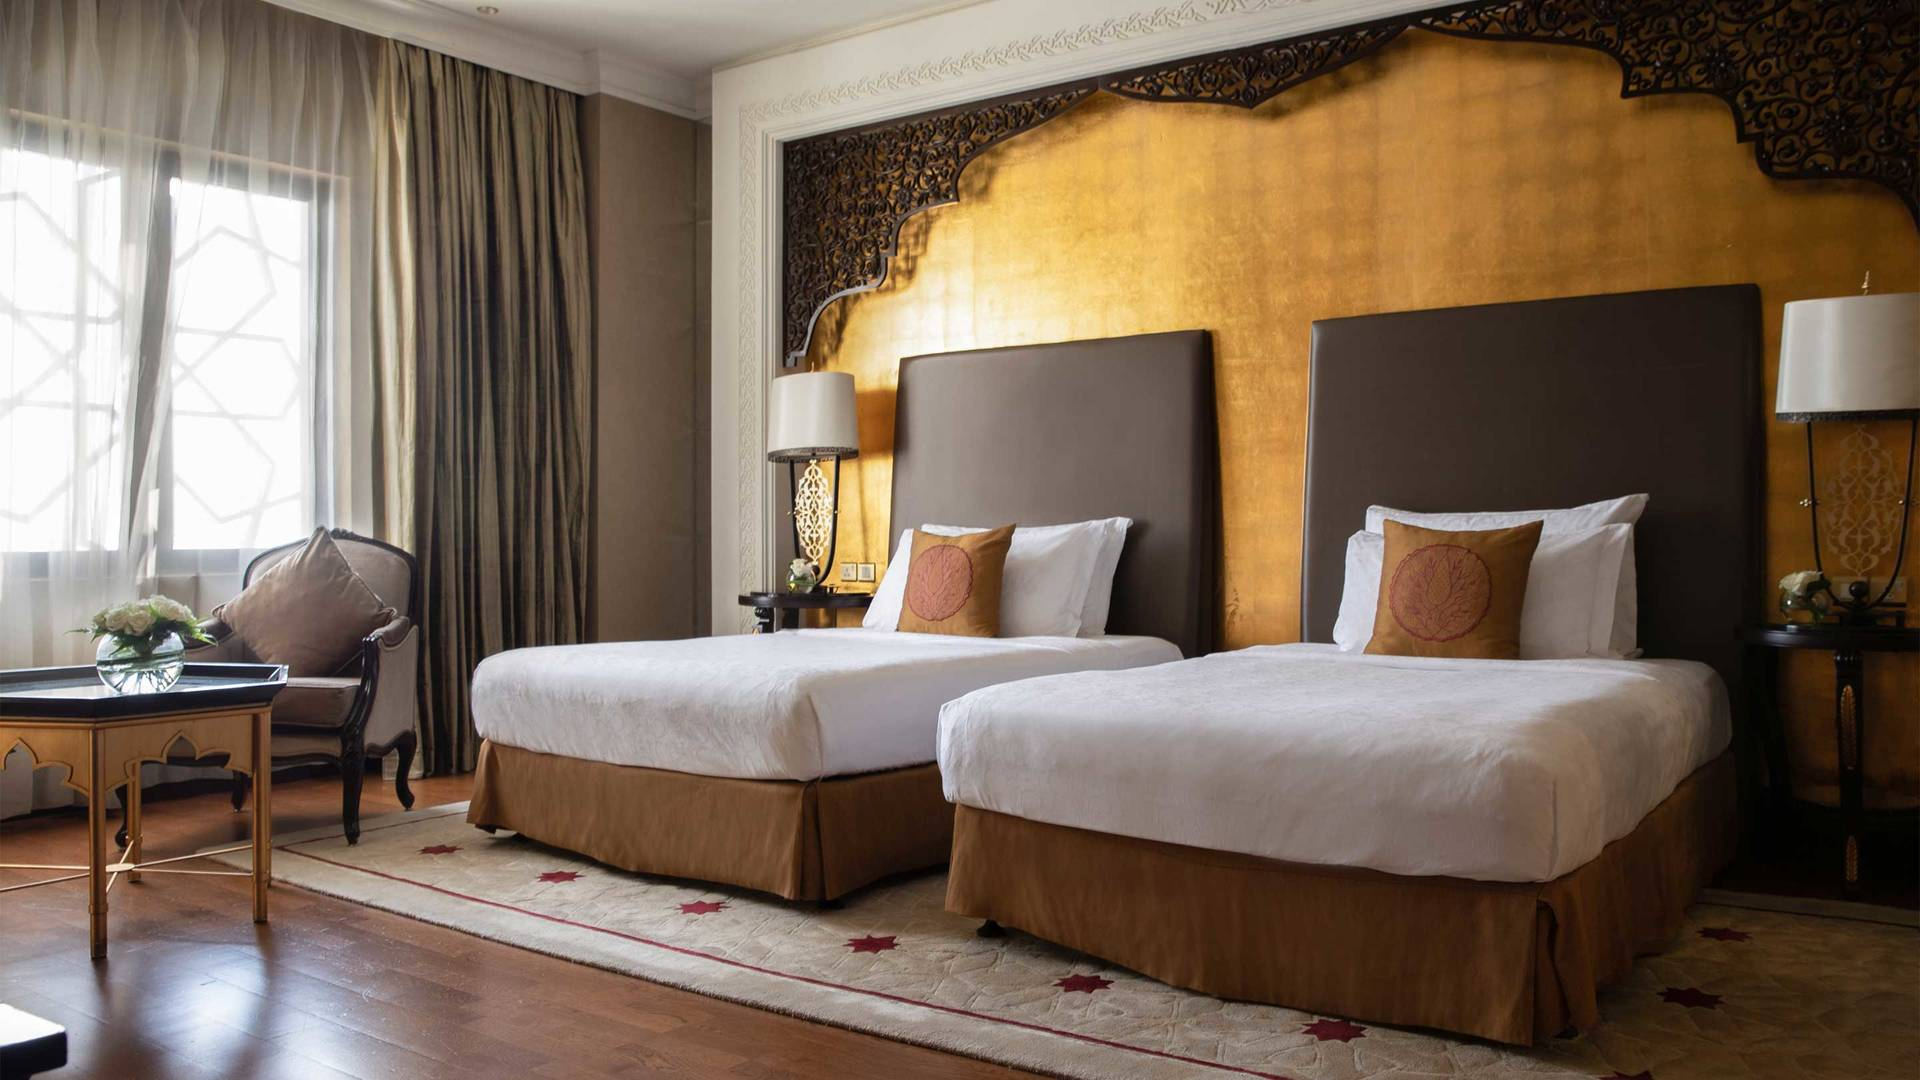 16-9 Room Jumeirah Zabeel Saray Two Bedroom-Suite Twin Bed Detail